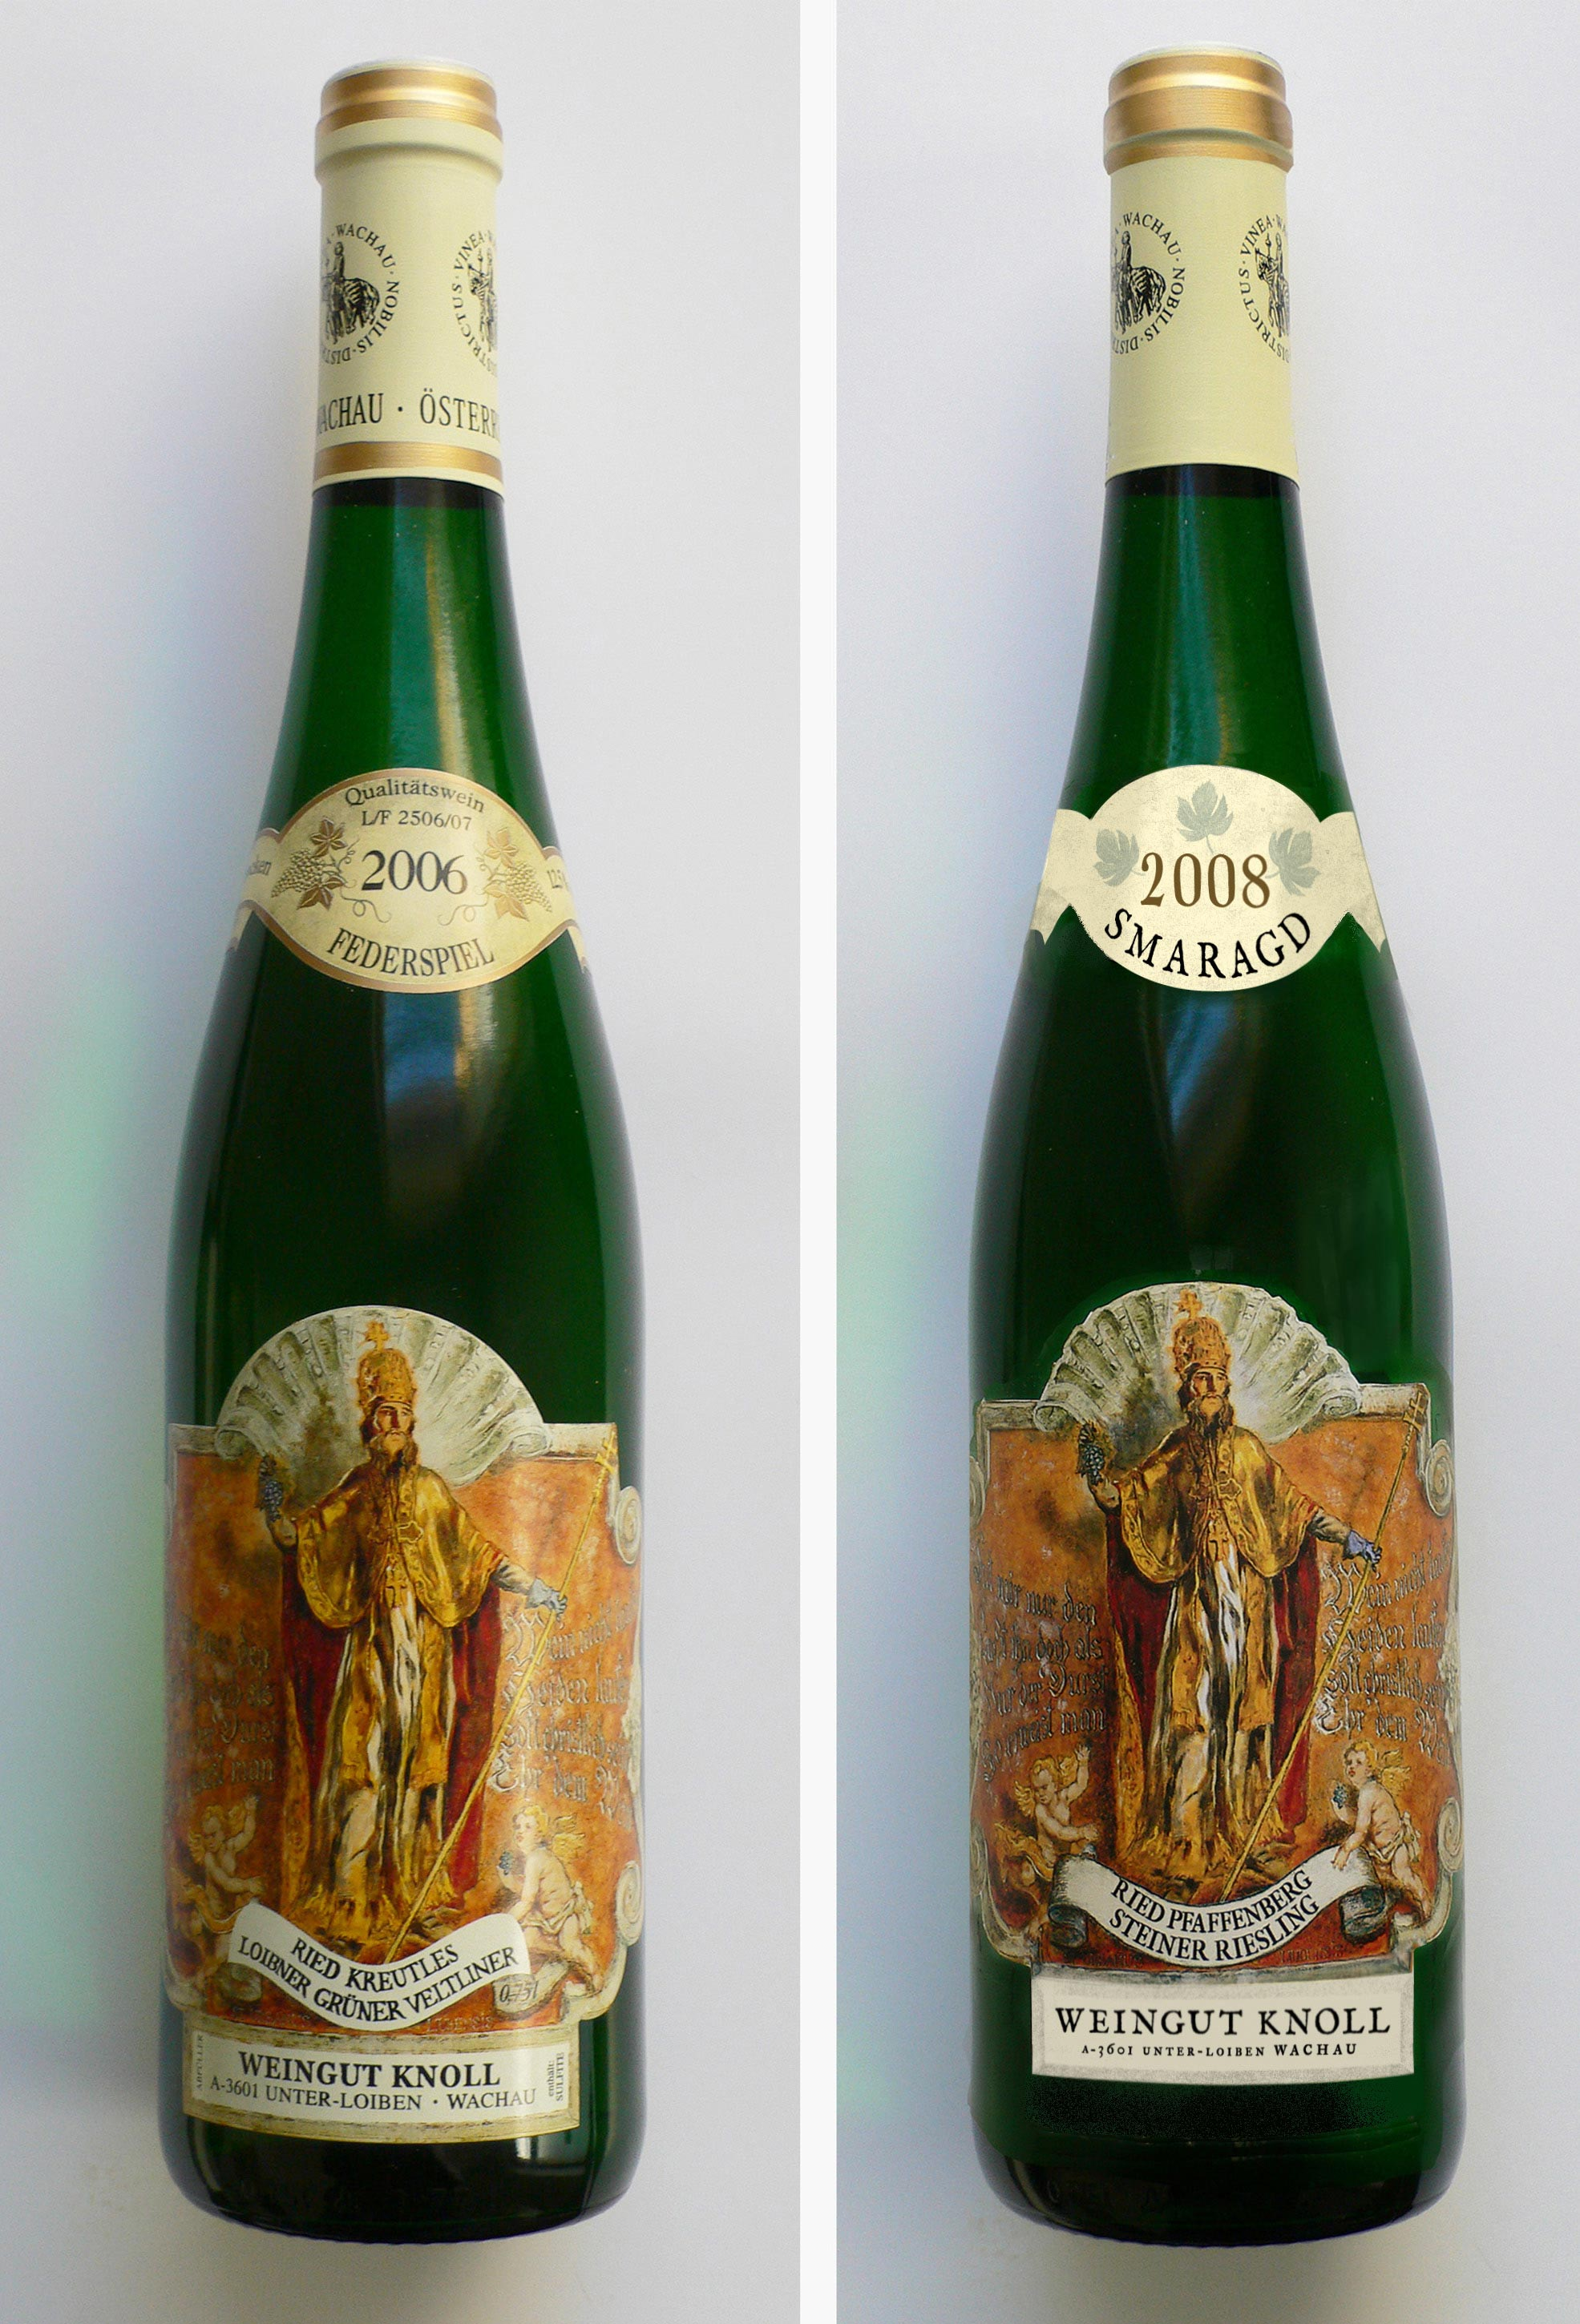 2 photos of the same wine bottle. Label differs slightly.